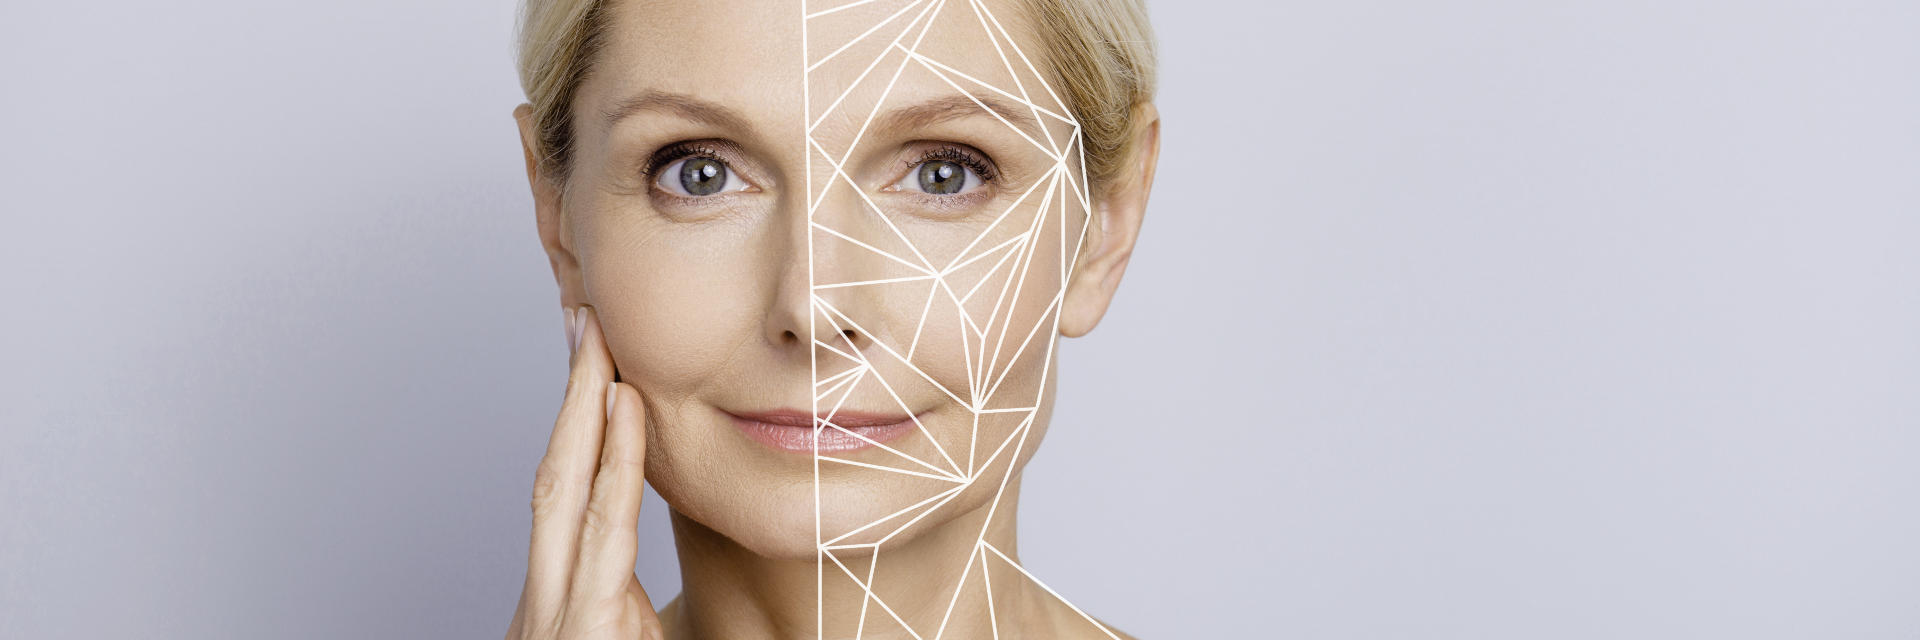 mature woman before and after facelift surgery